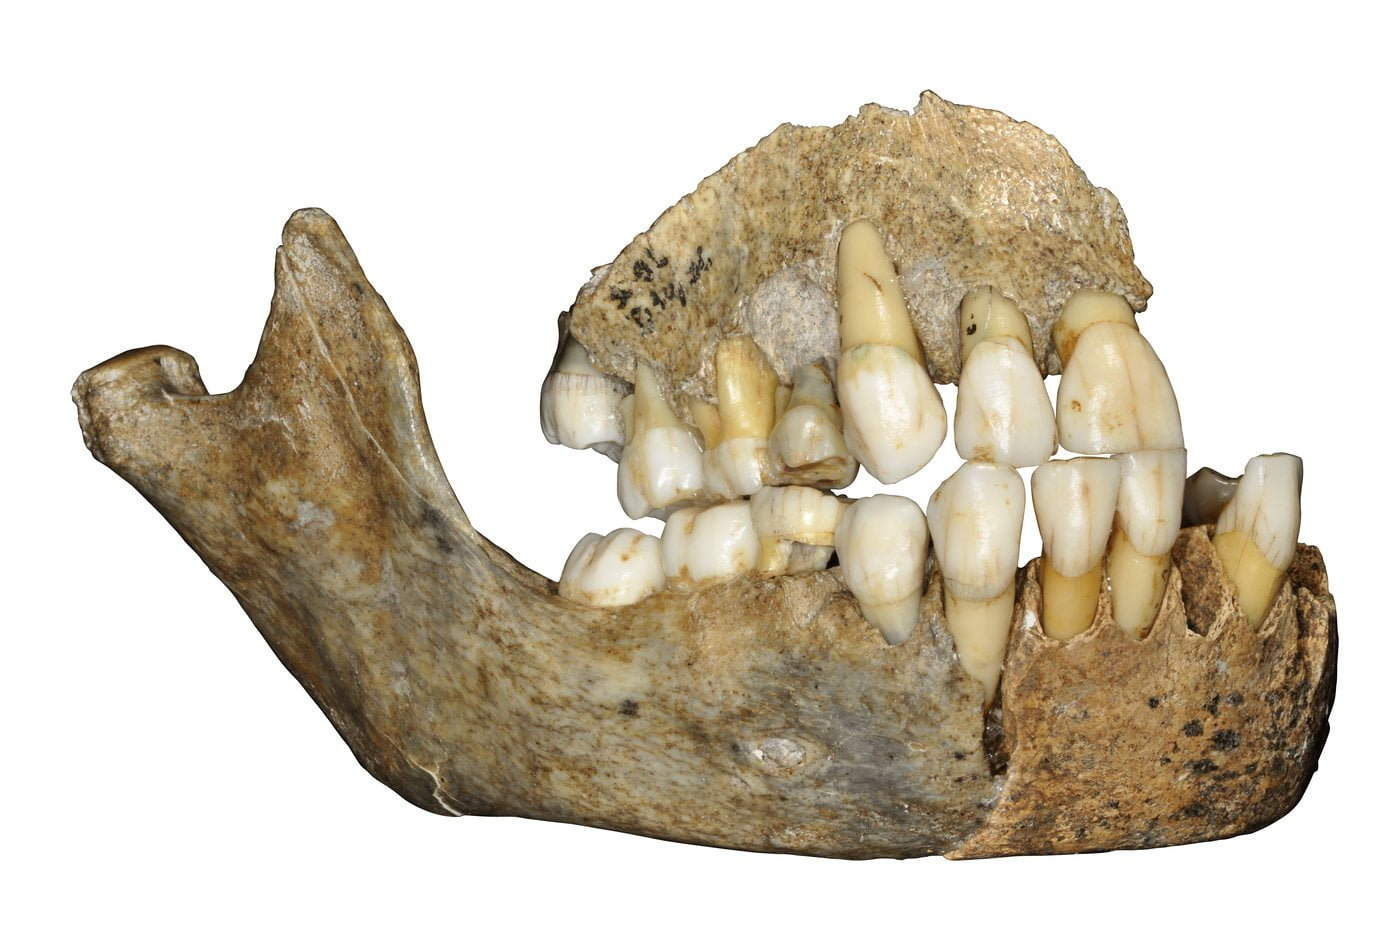 History of Neanderthals In Europe